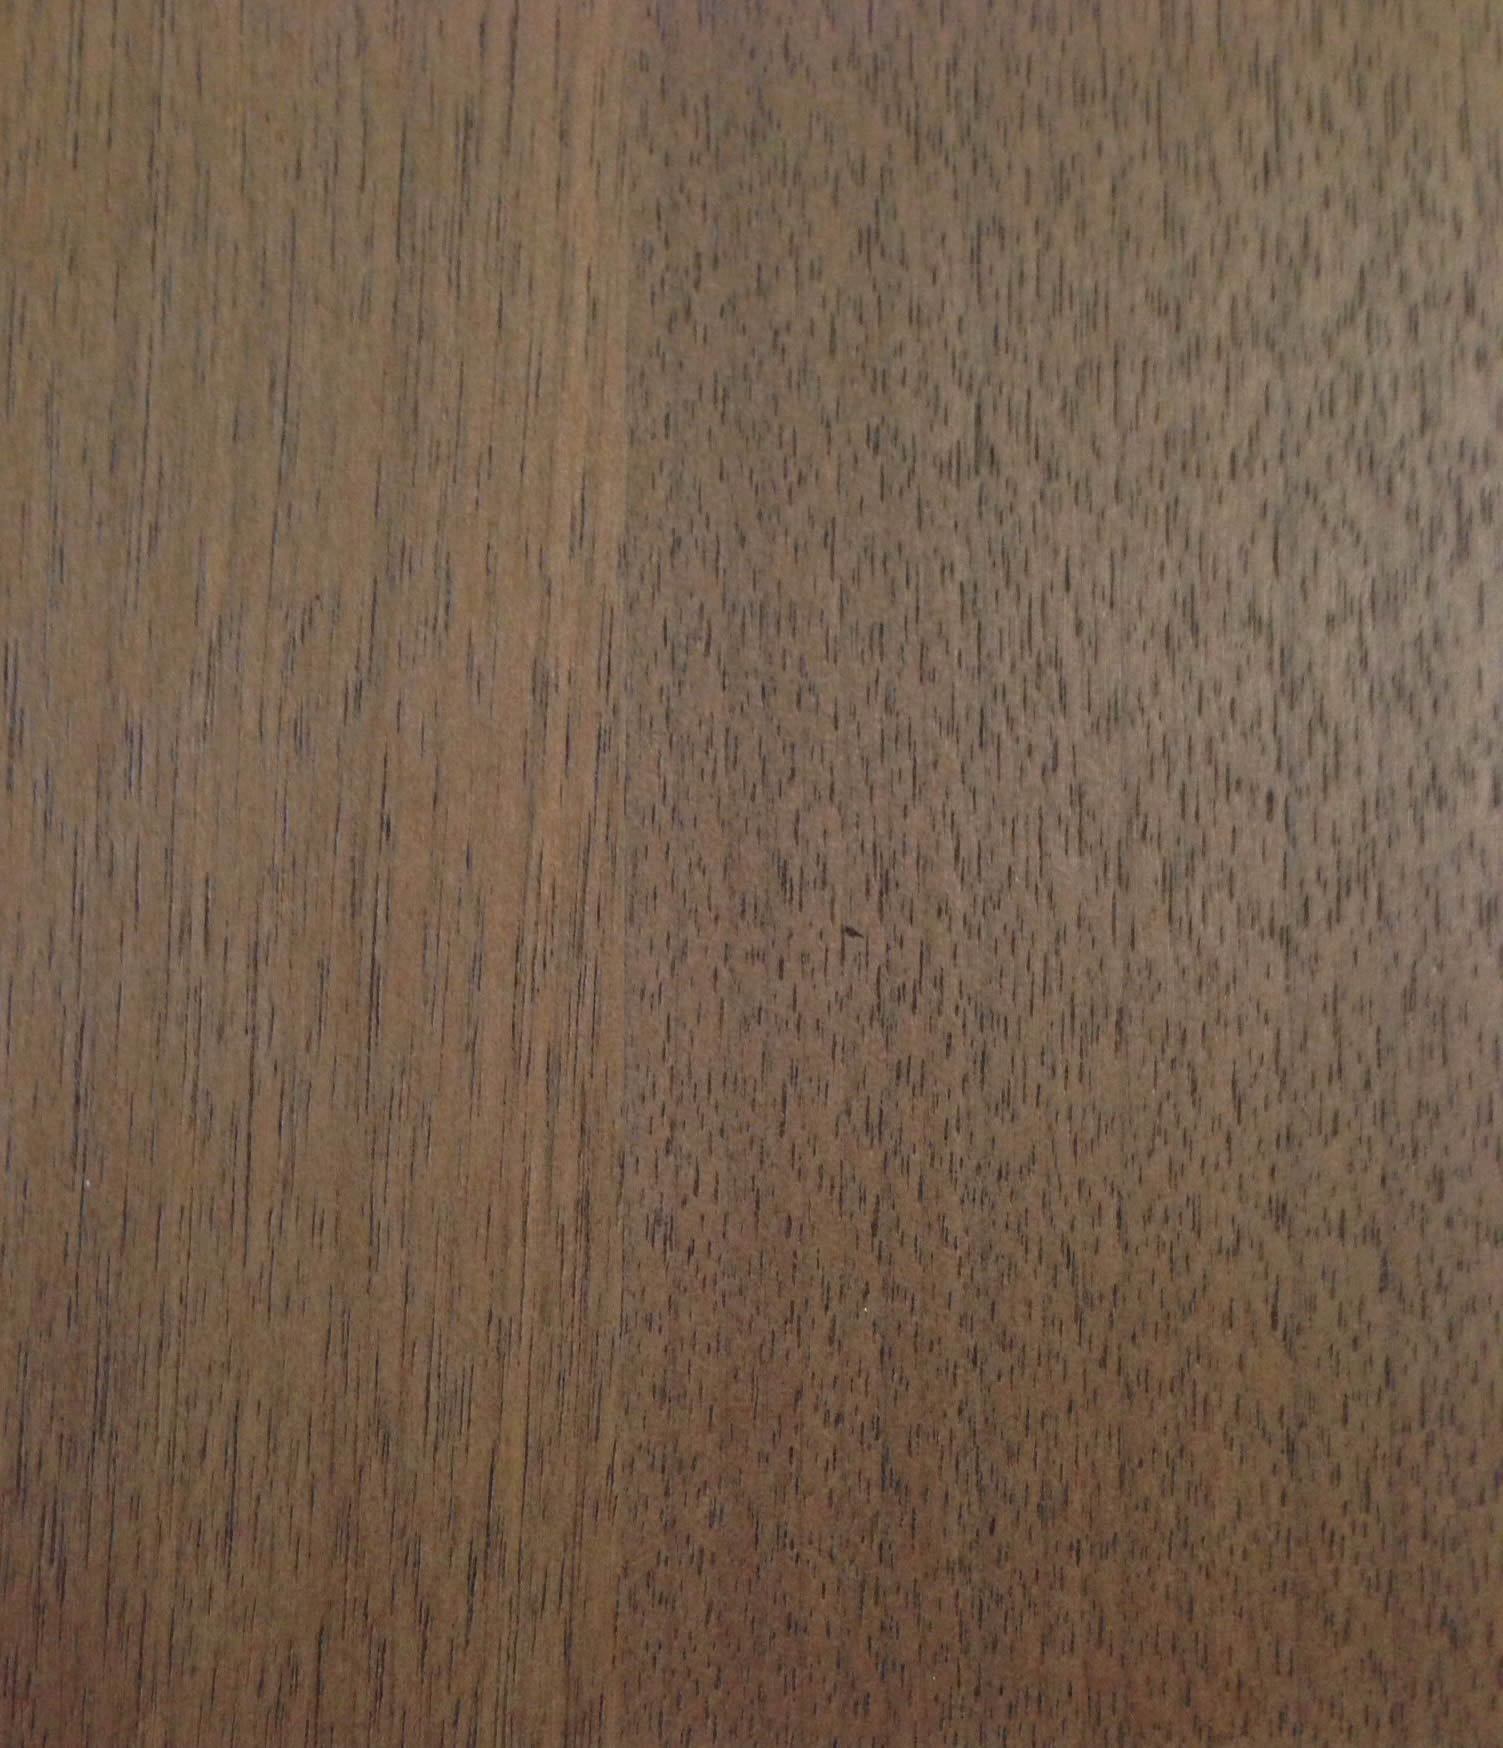 Walnut QC Stained 081201